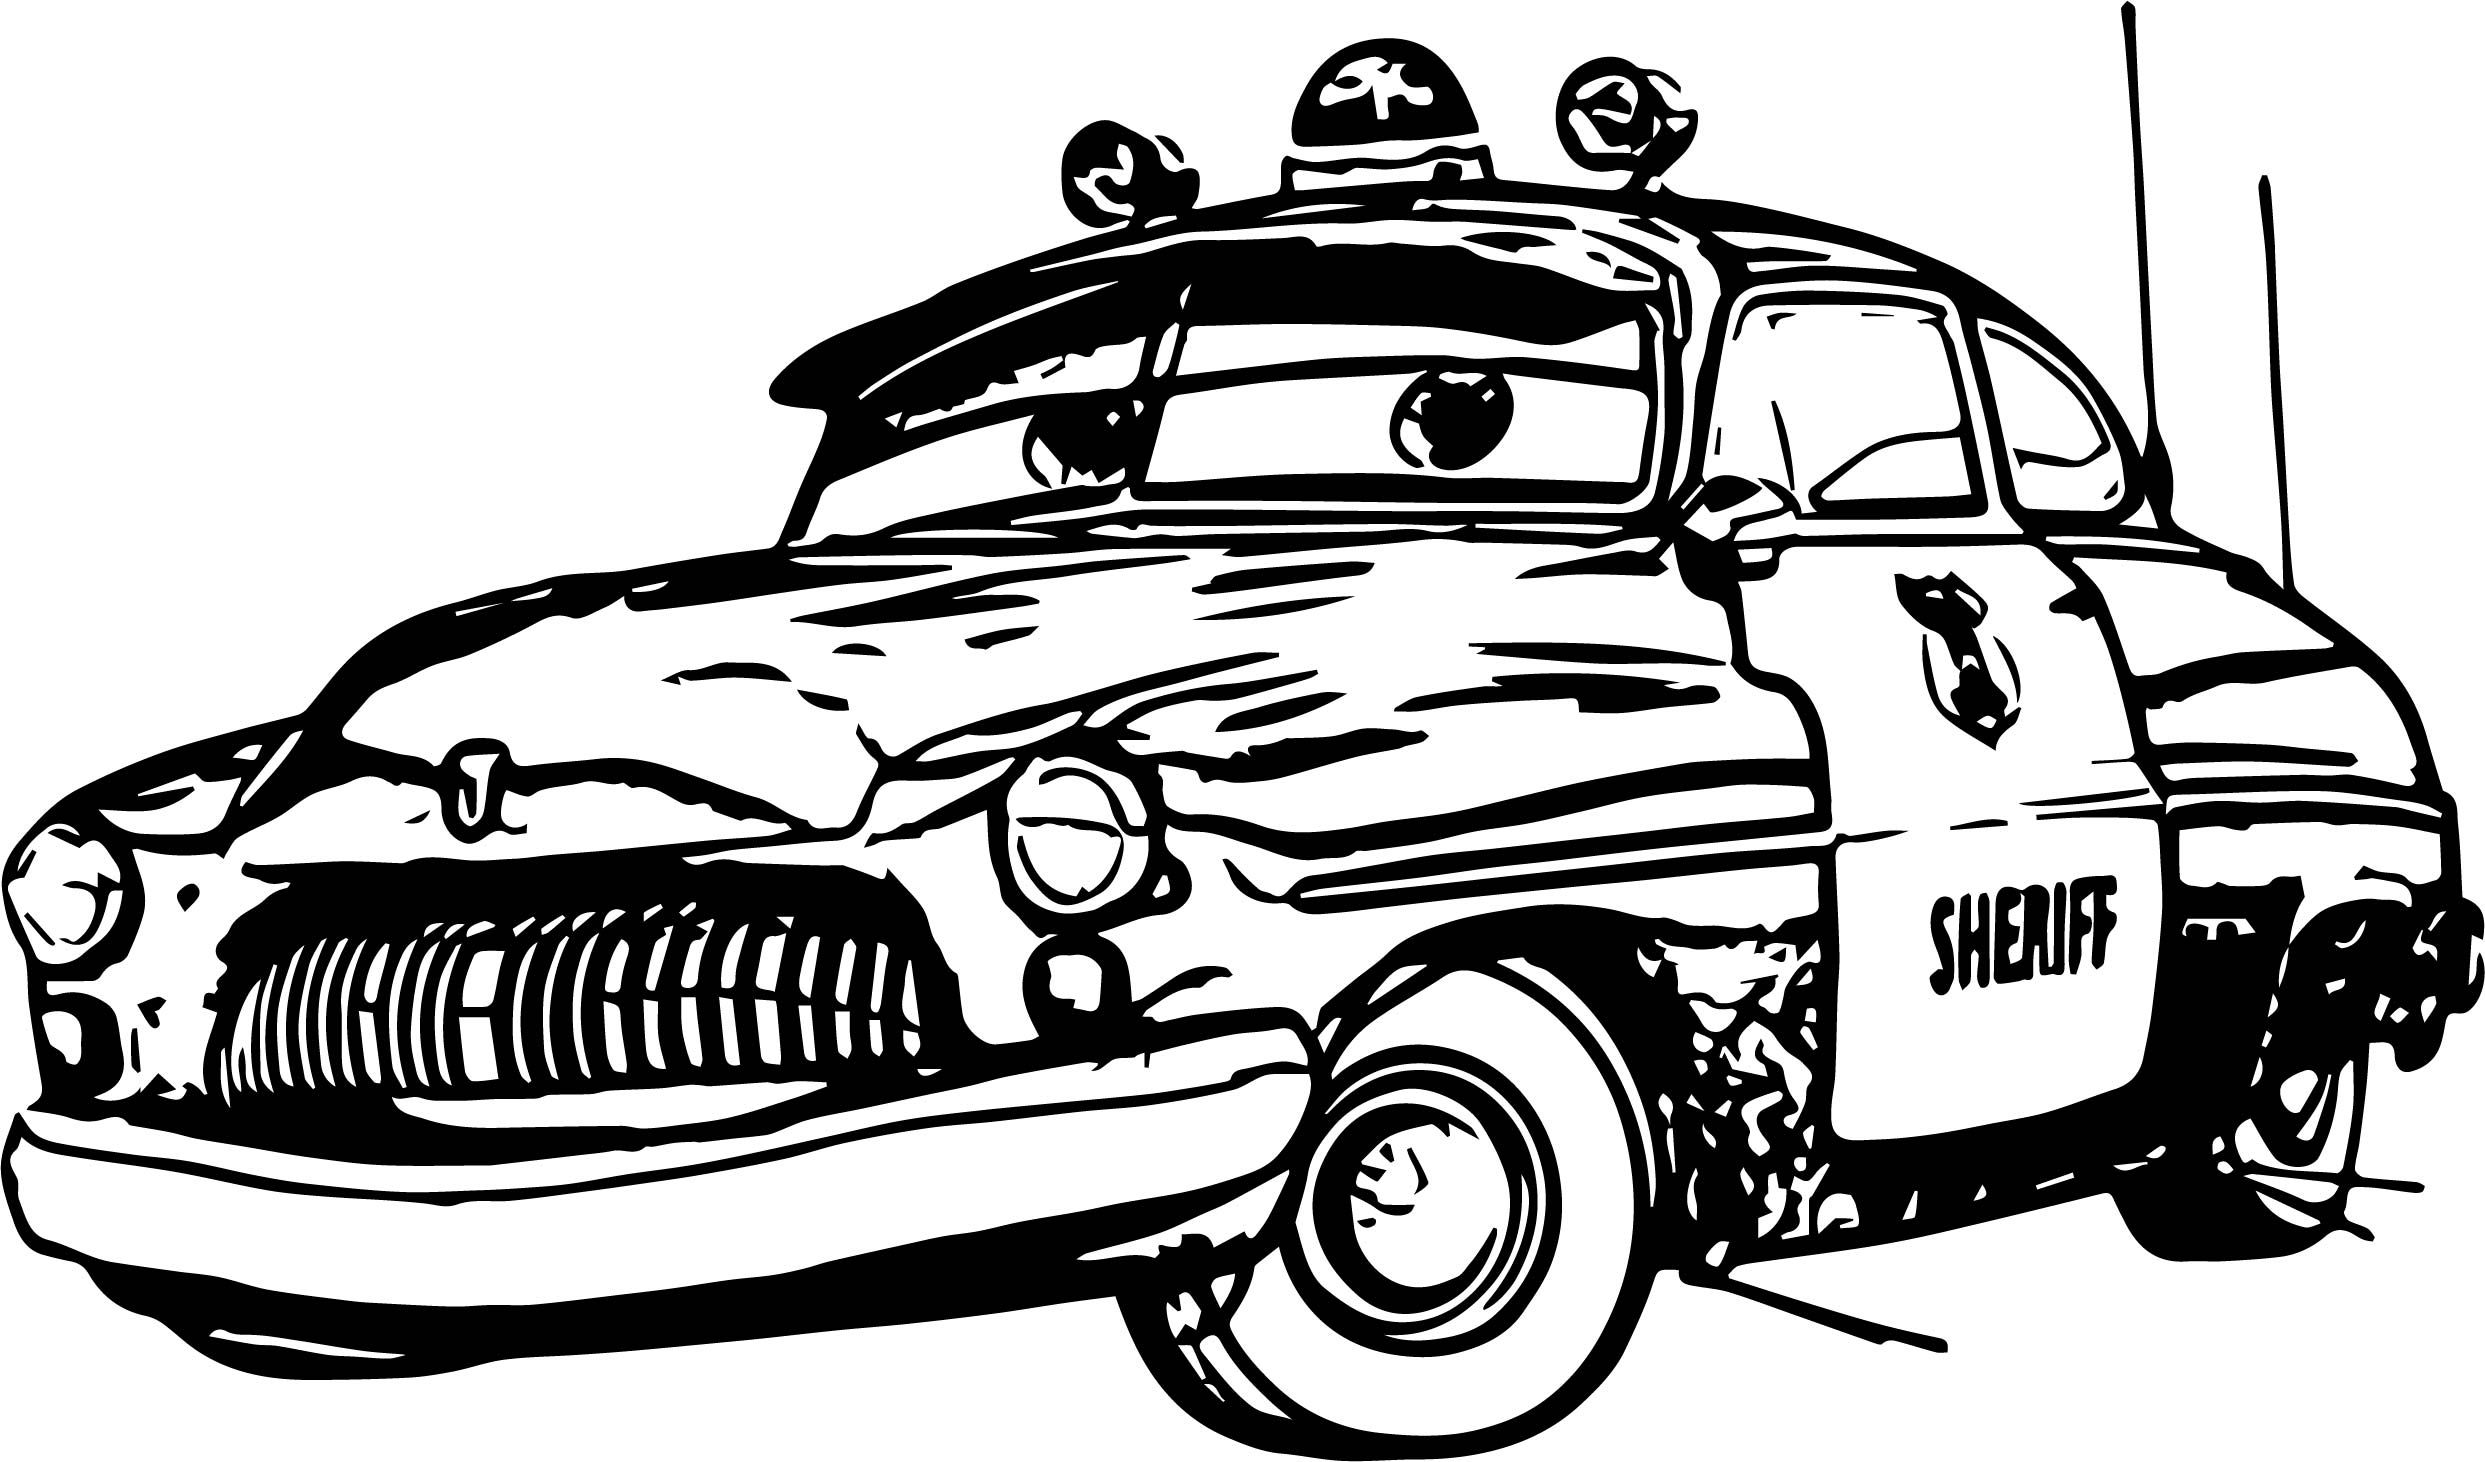 Cool Any Disney Cars Sheriff Coloring Page Disney Cars Cars Coloring Pages Disney Cars Movie